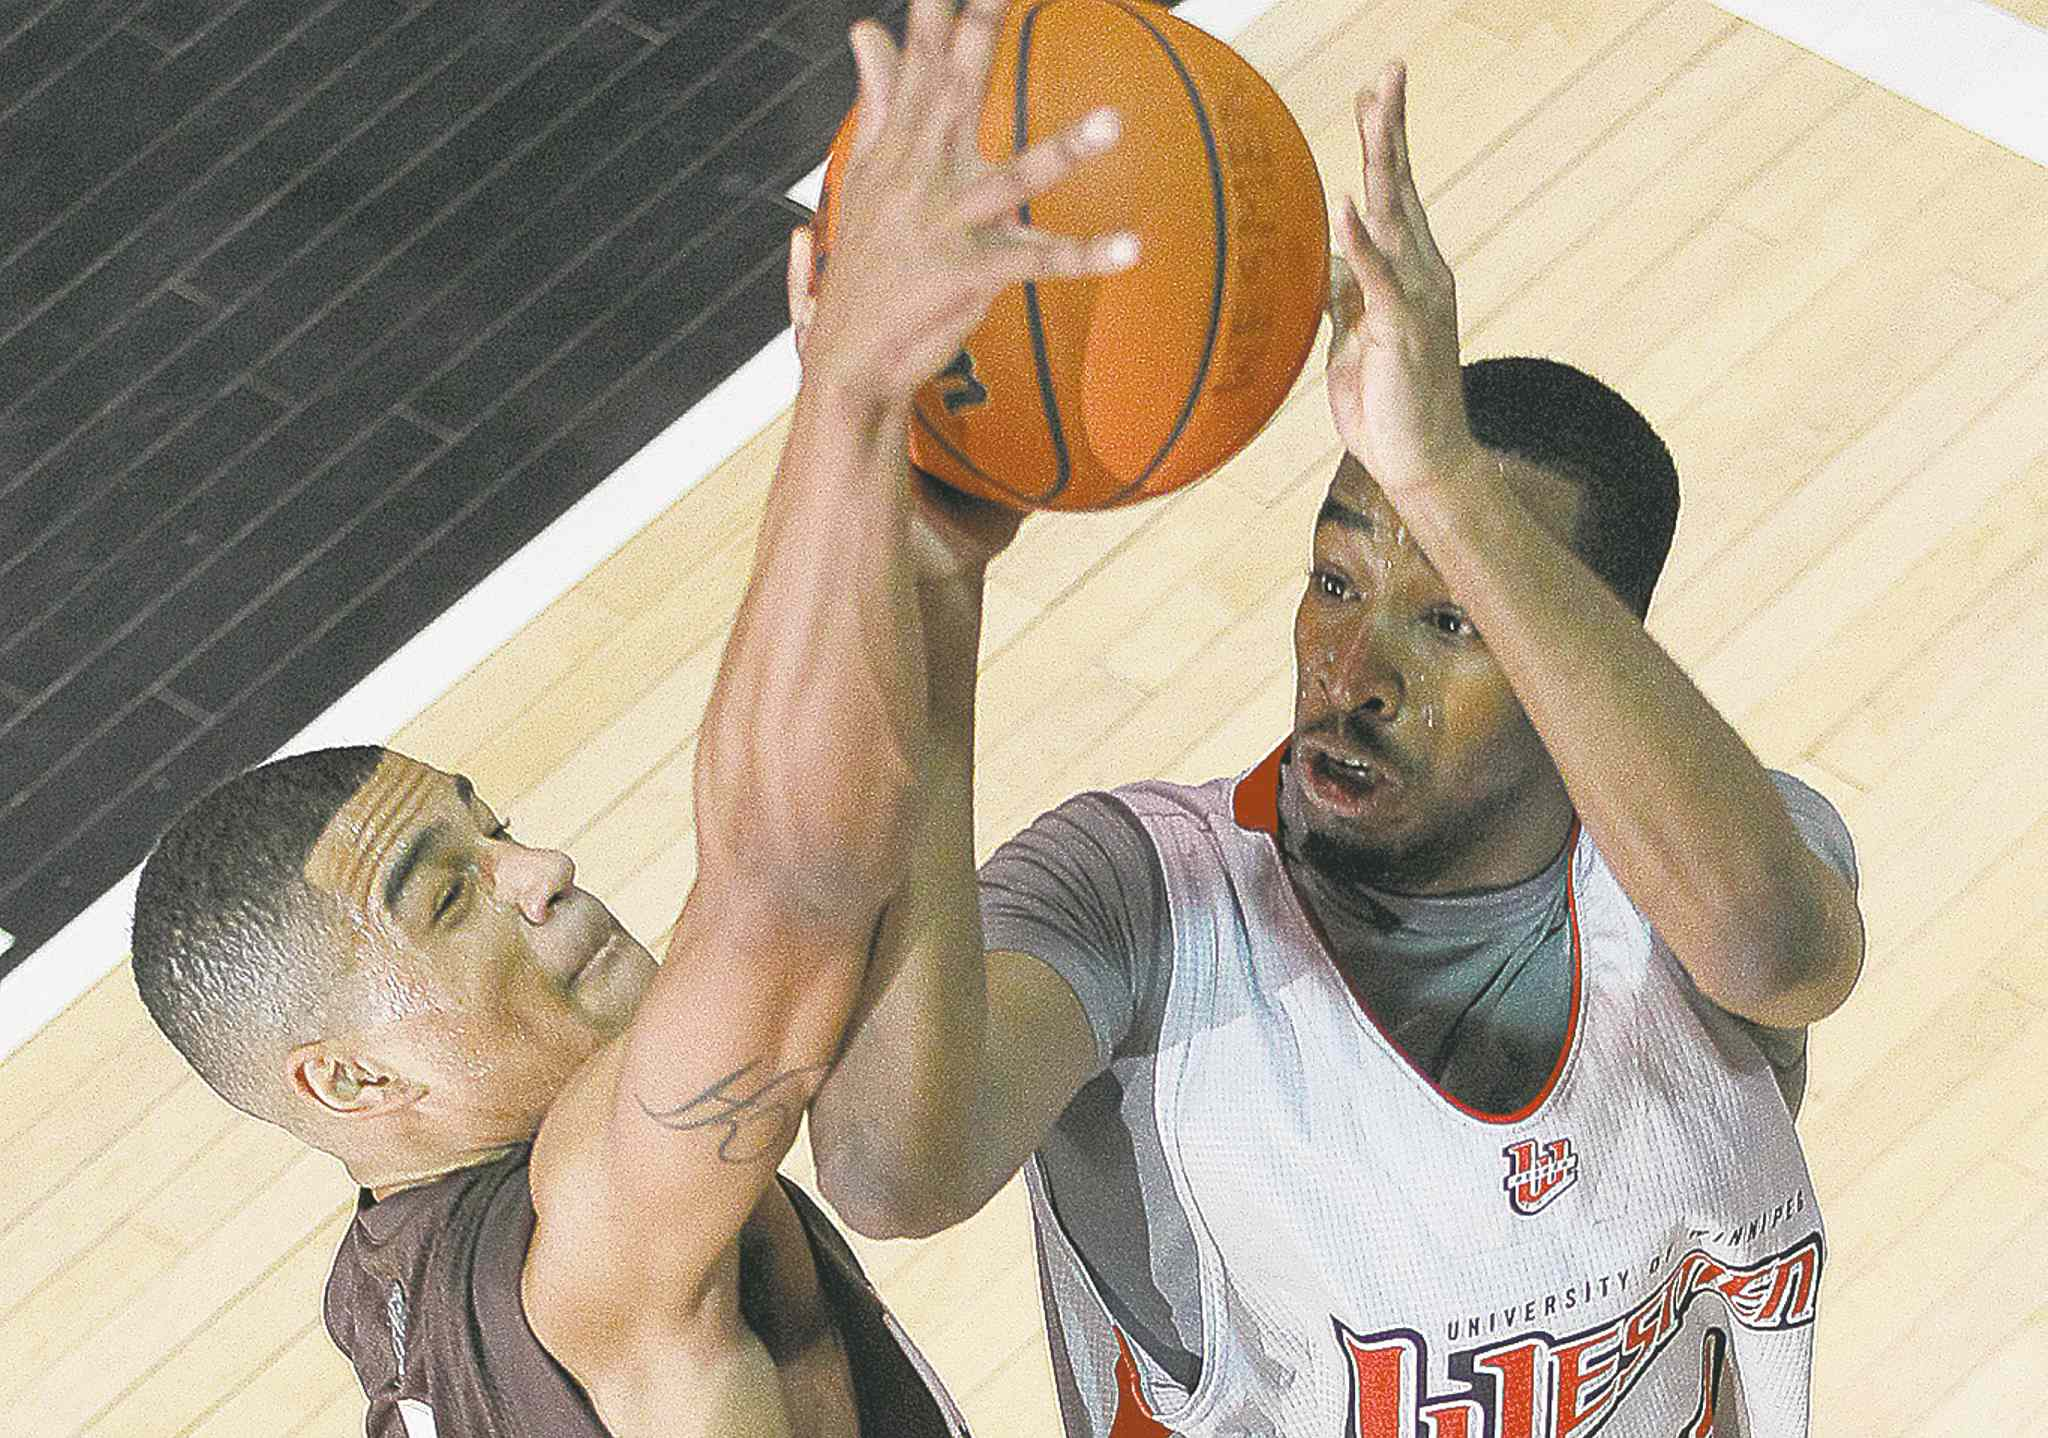 Wesmen Jordan Clennon (right) attempts to shoot over Bison Justus Alleyn during semifinal action at the Wesmen Classic.